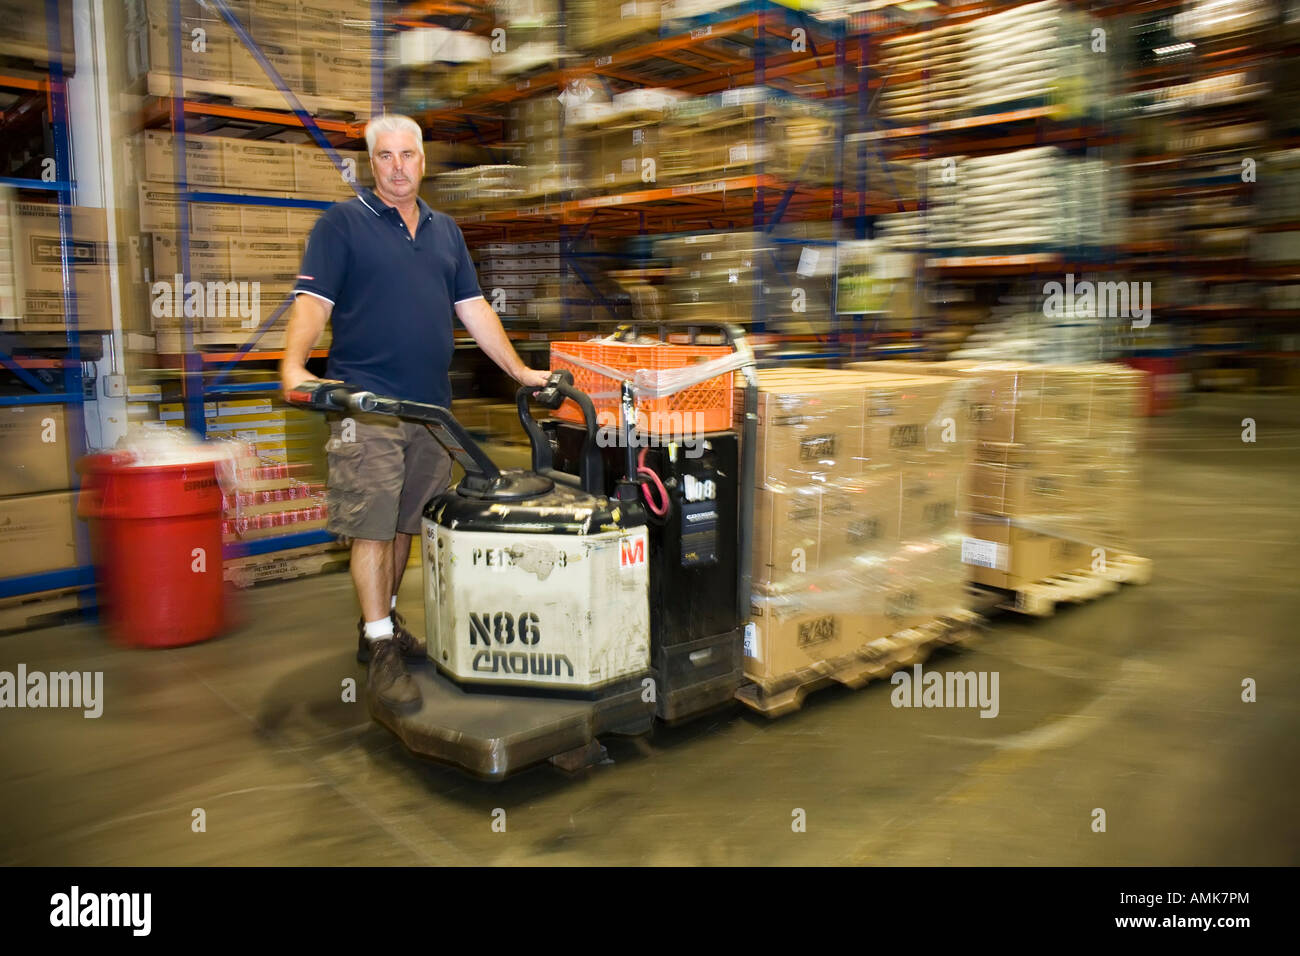 Food service warehouse - Stock Image